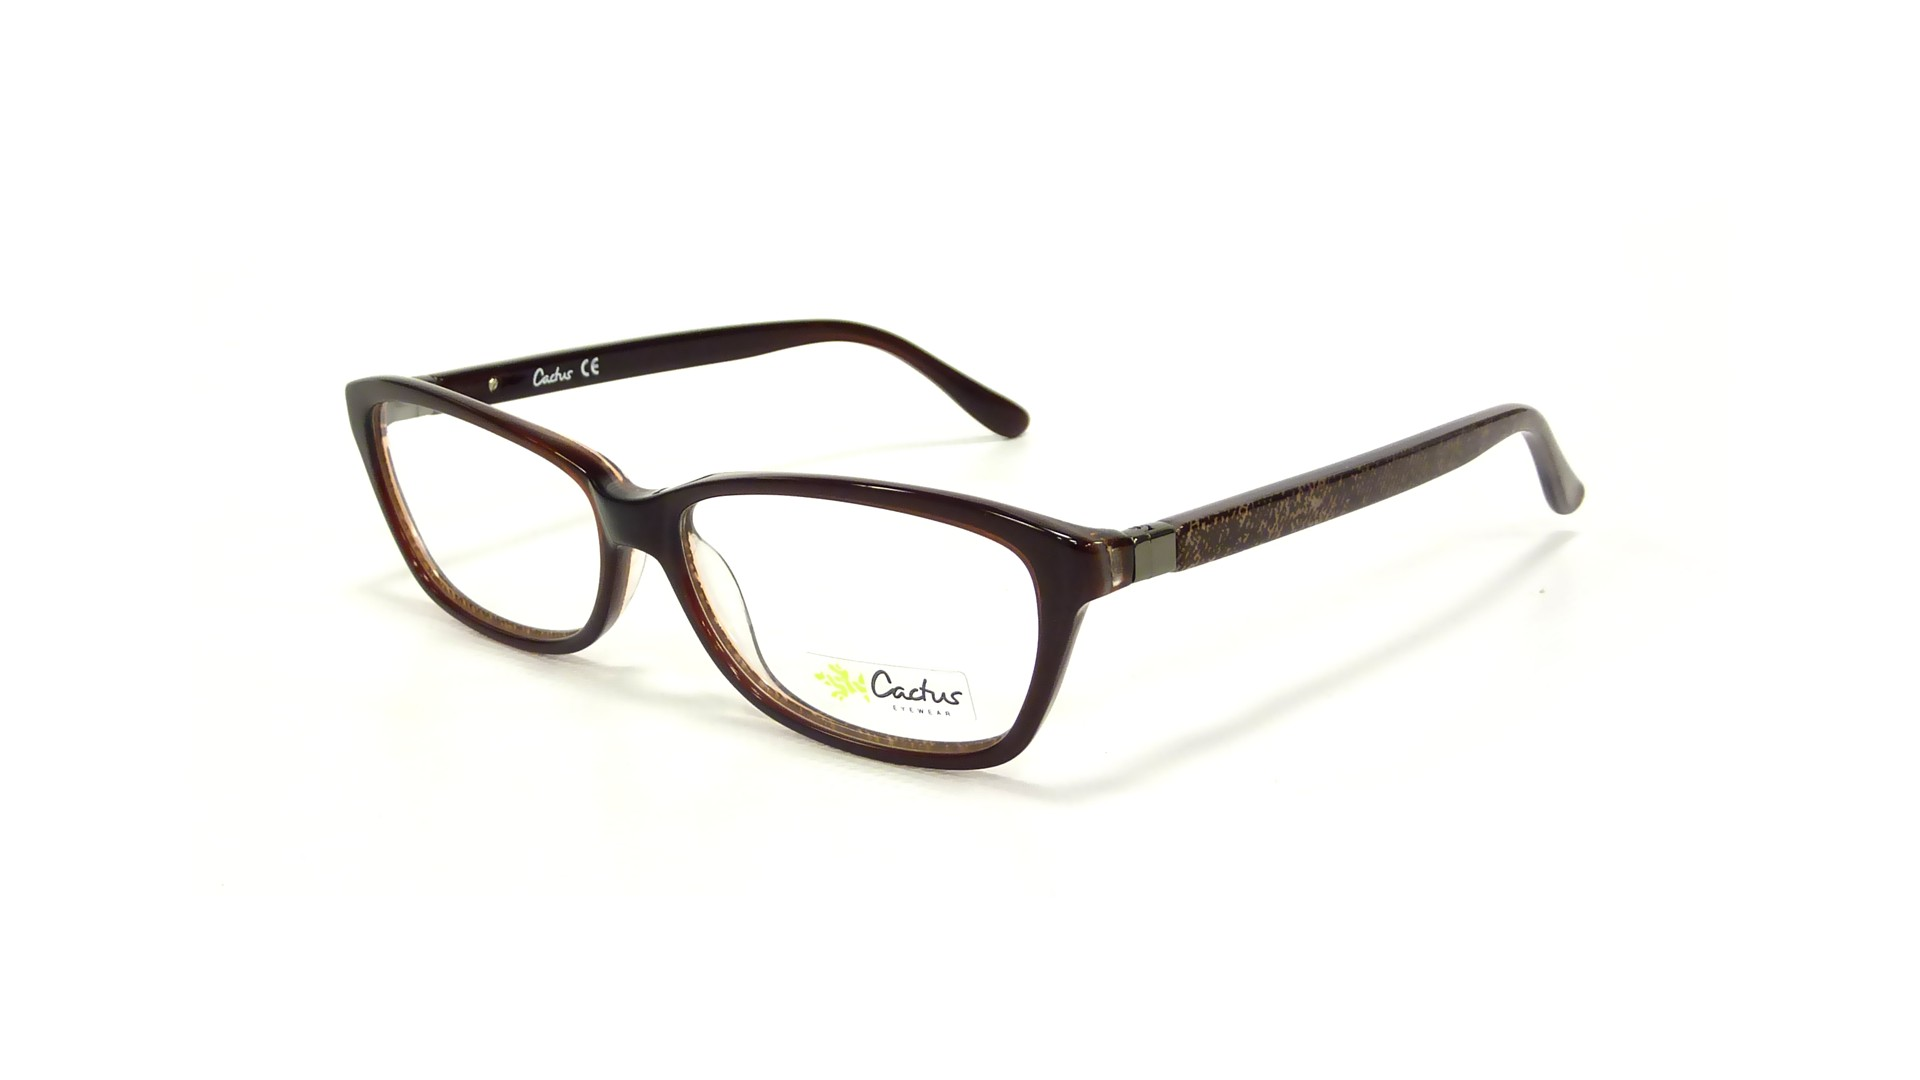 Glasses Frames Recto Or Quiapo : Eye glasses Cactus Pepa A C02 Brown